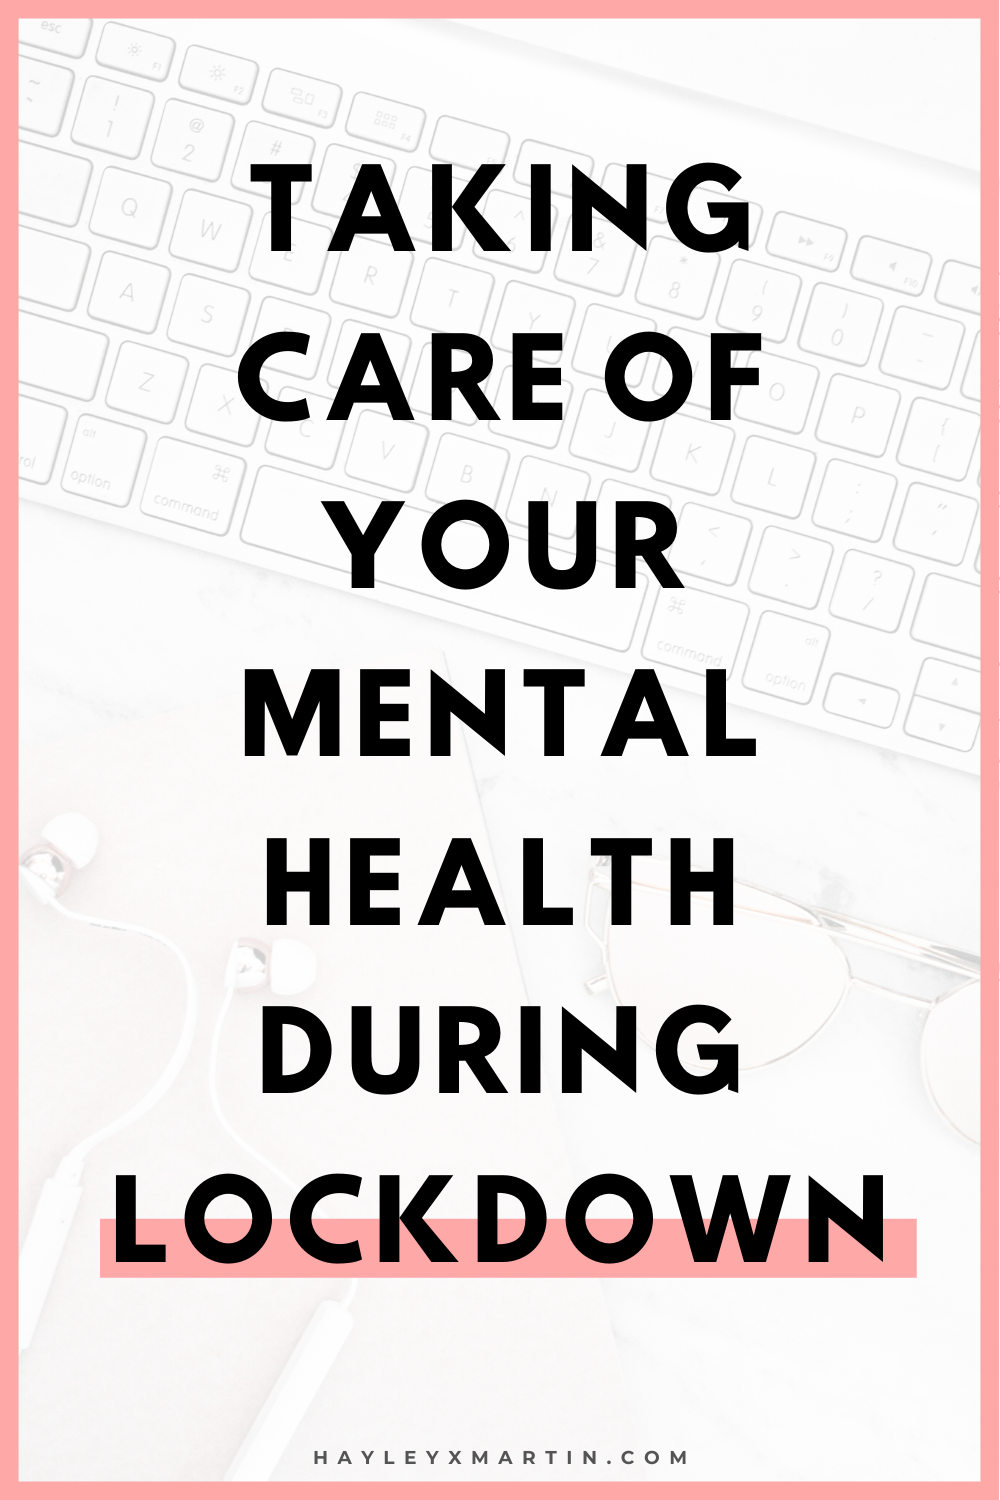 TAKING CARE OF YOUR MENTAL HEALTH DURING LOCKDOWN | HAYLEYXMARTIN